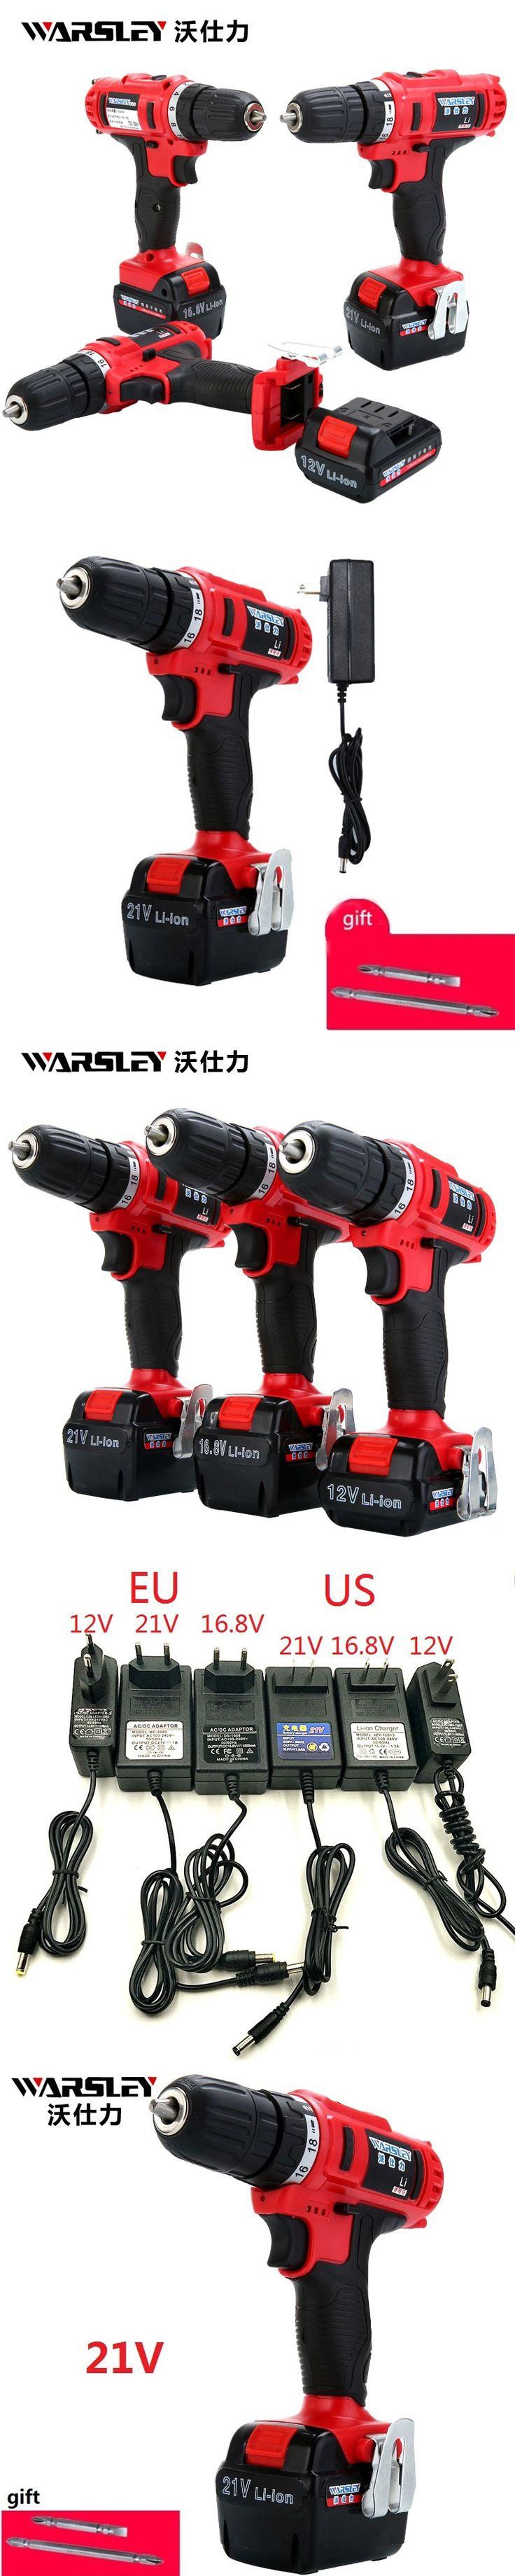 21v Electric screwdriver battery Electric Cordless Drill power tools Like  perceuse sans fil Electric Tools Mini Drill